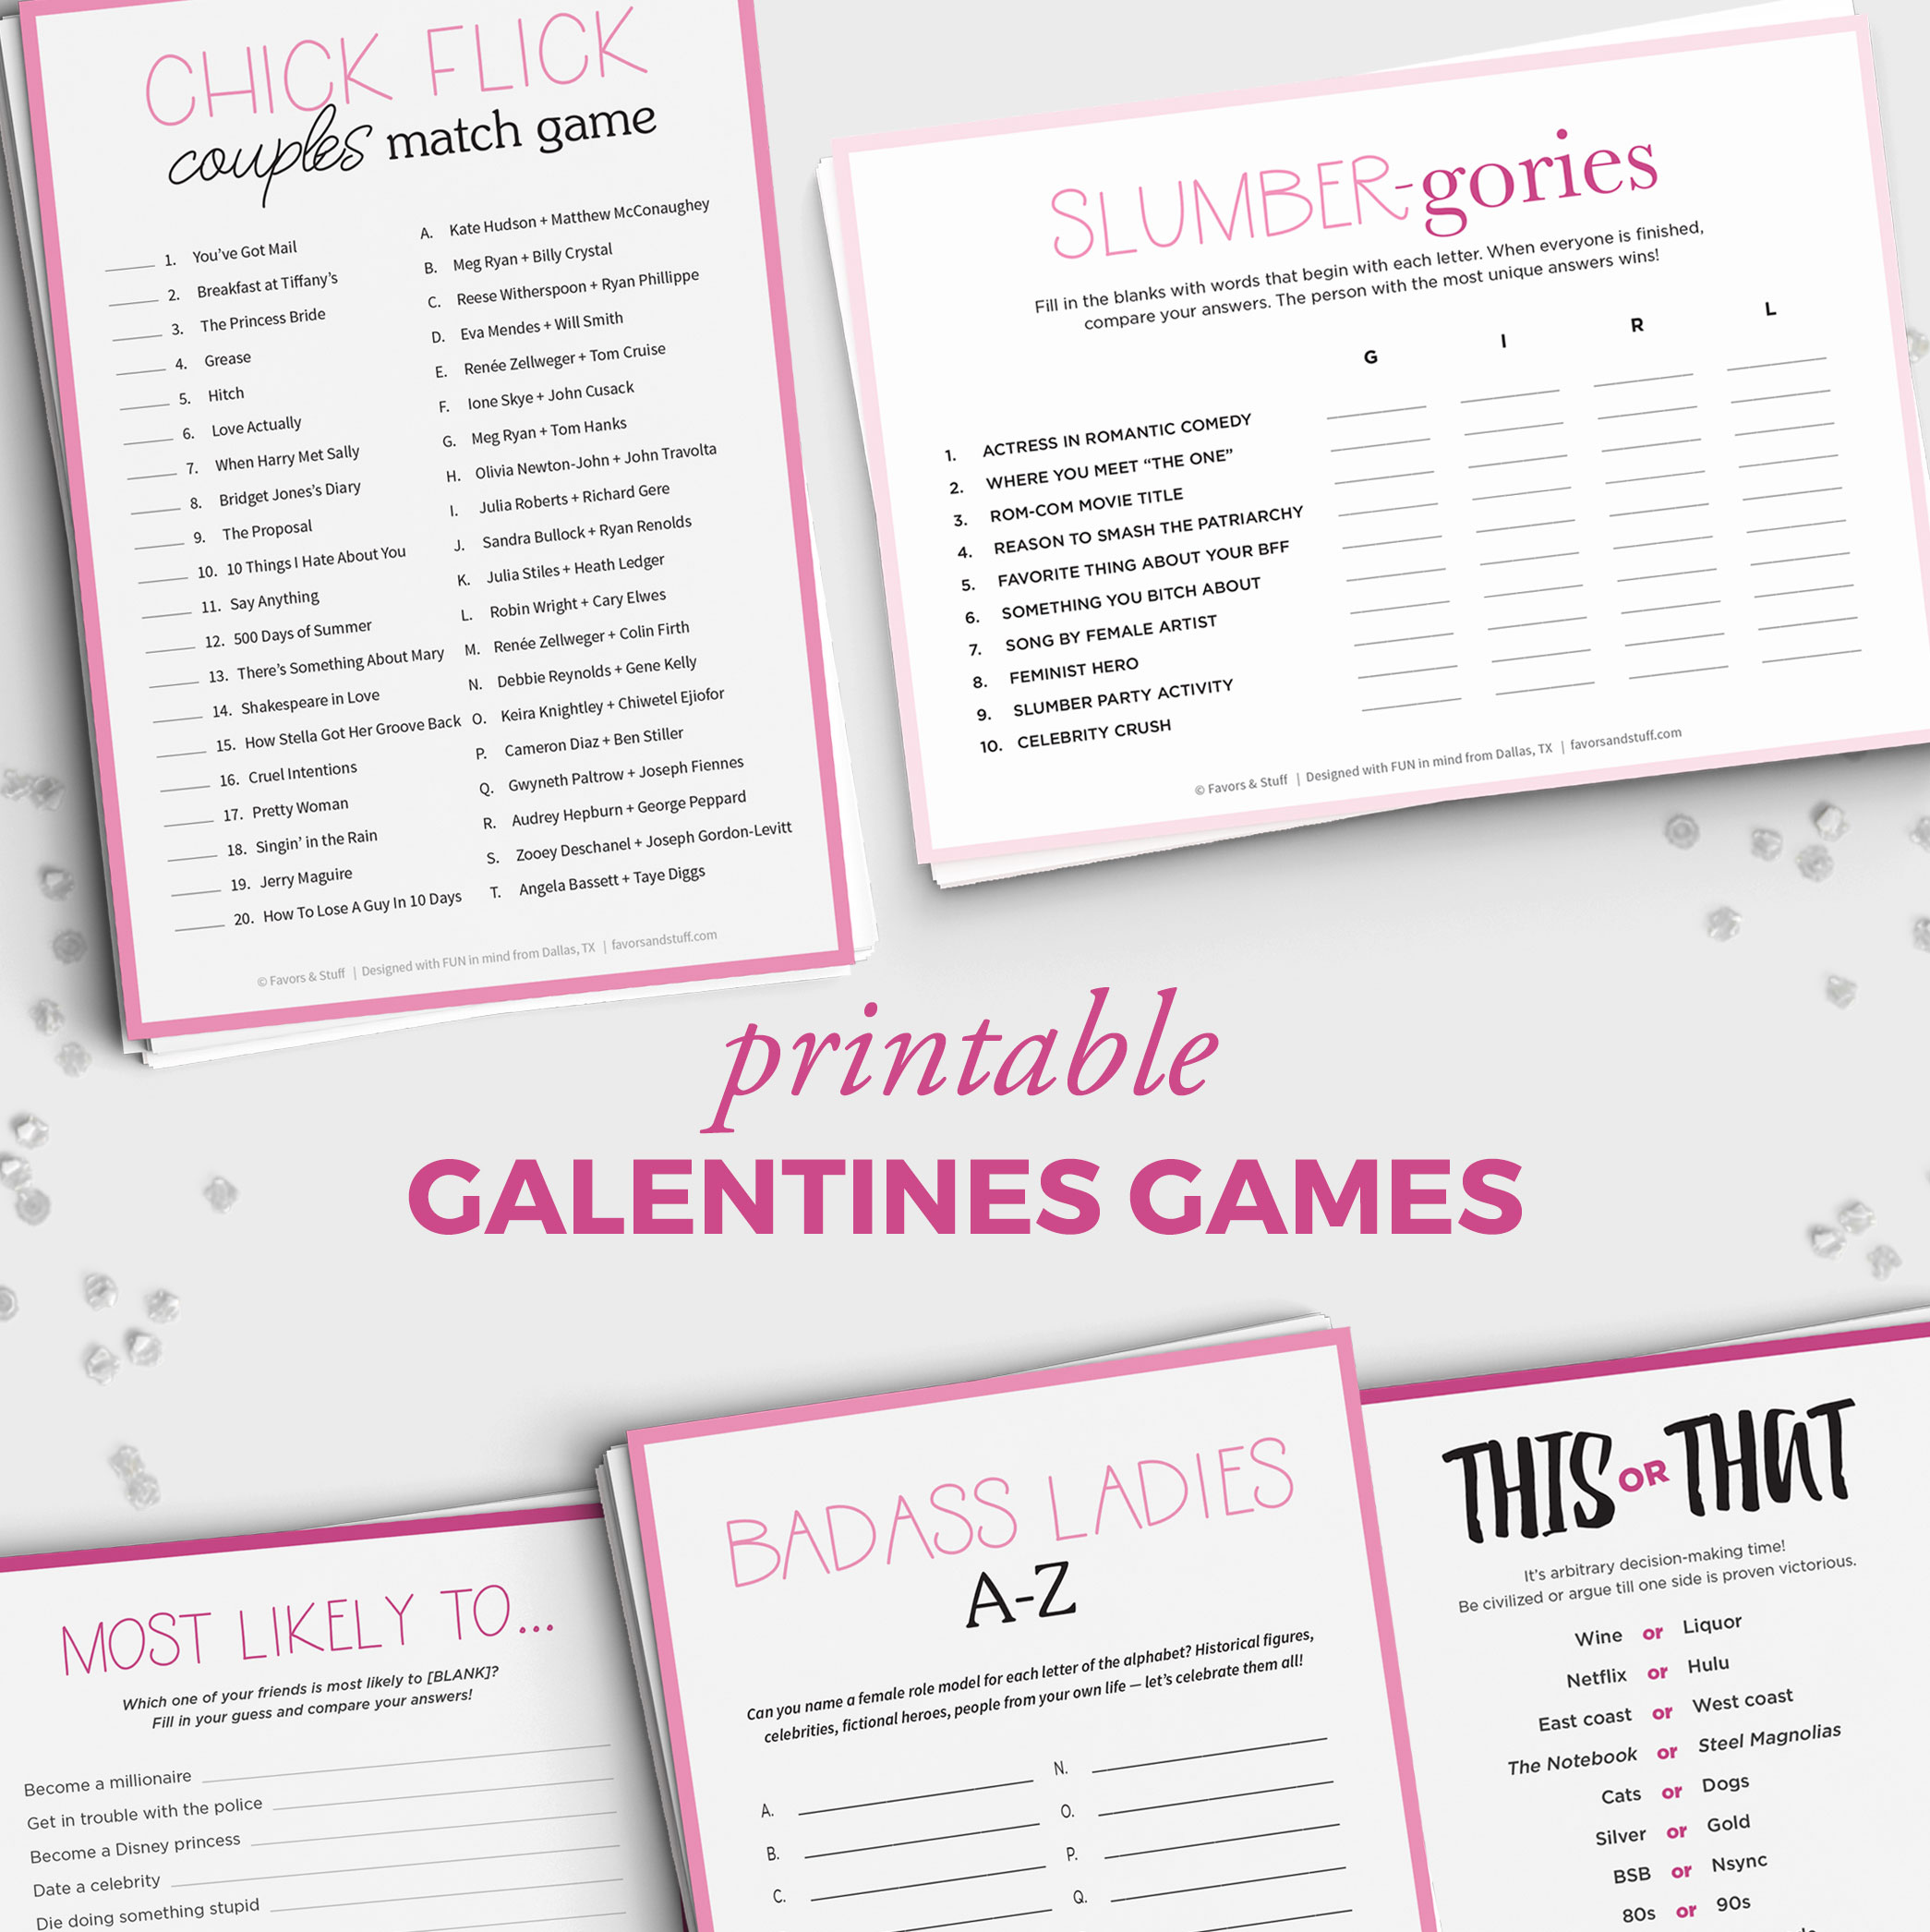 Galentines - Celebrating Women and Female Friendships ...